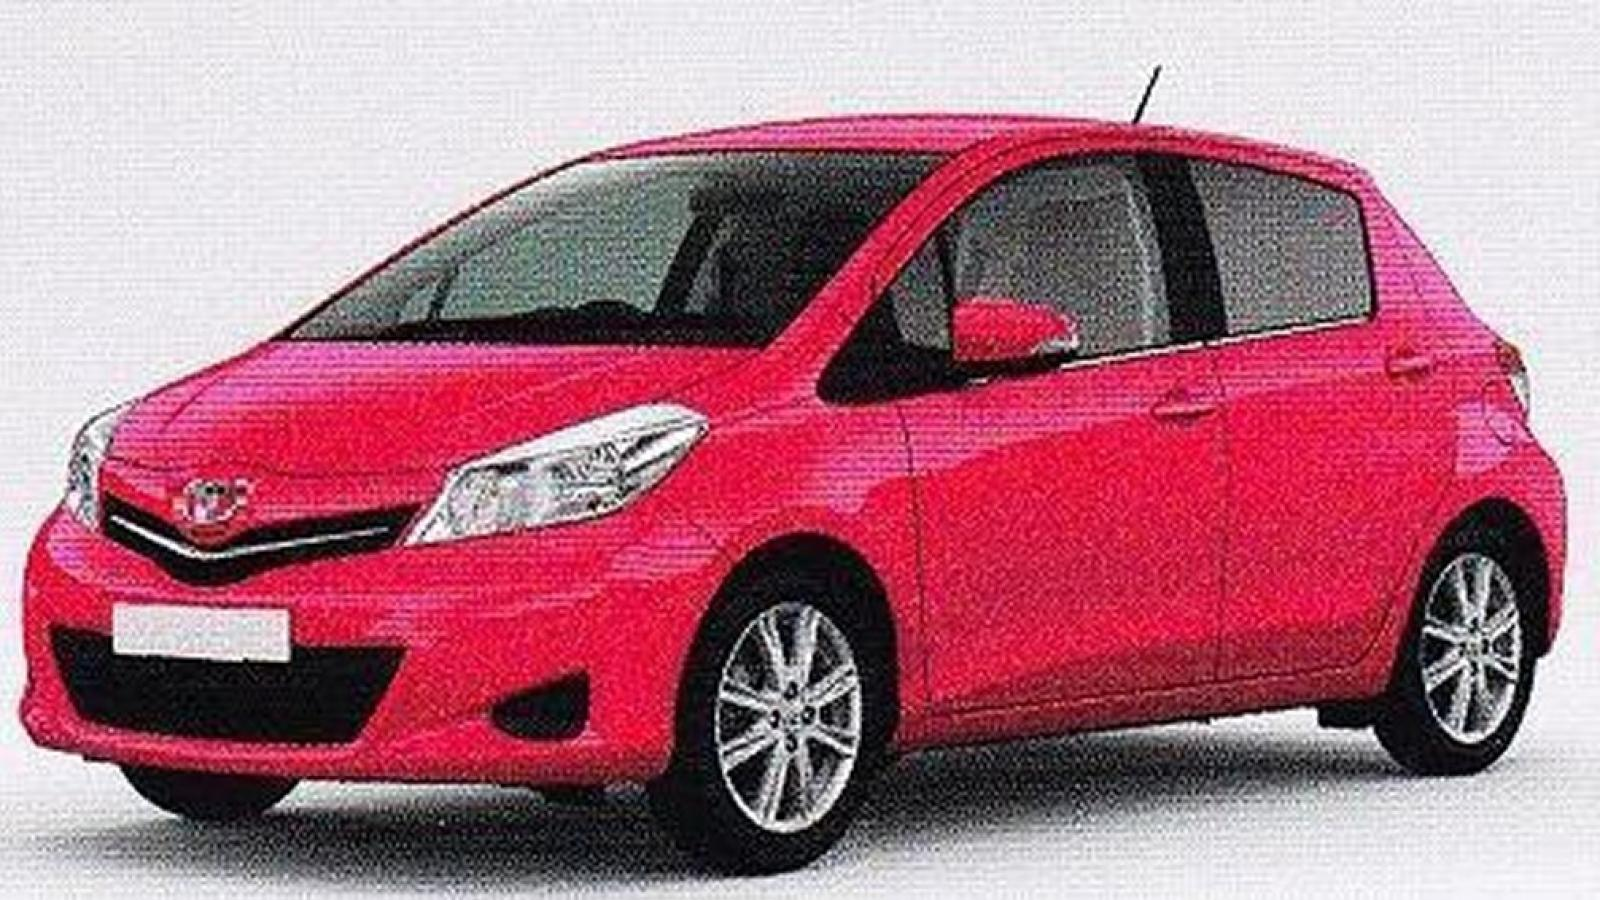 2011 toyota yaris information and photos zombiedrive. Black Bedroom Furniture Sets. Home Design Ideas